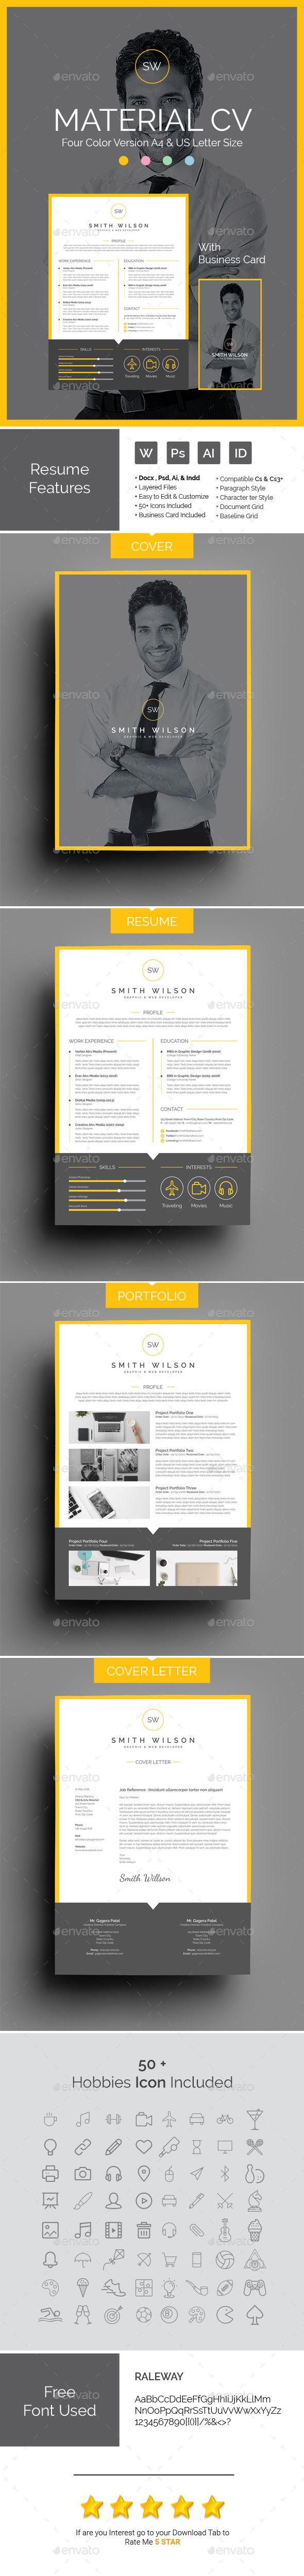 makeup artist cover letters%0A Material CV Template AI  INDD  PSD  u     DOCX File  Download here  http  Design  ResumeCv